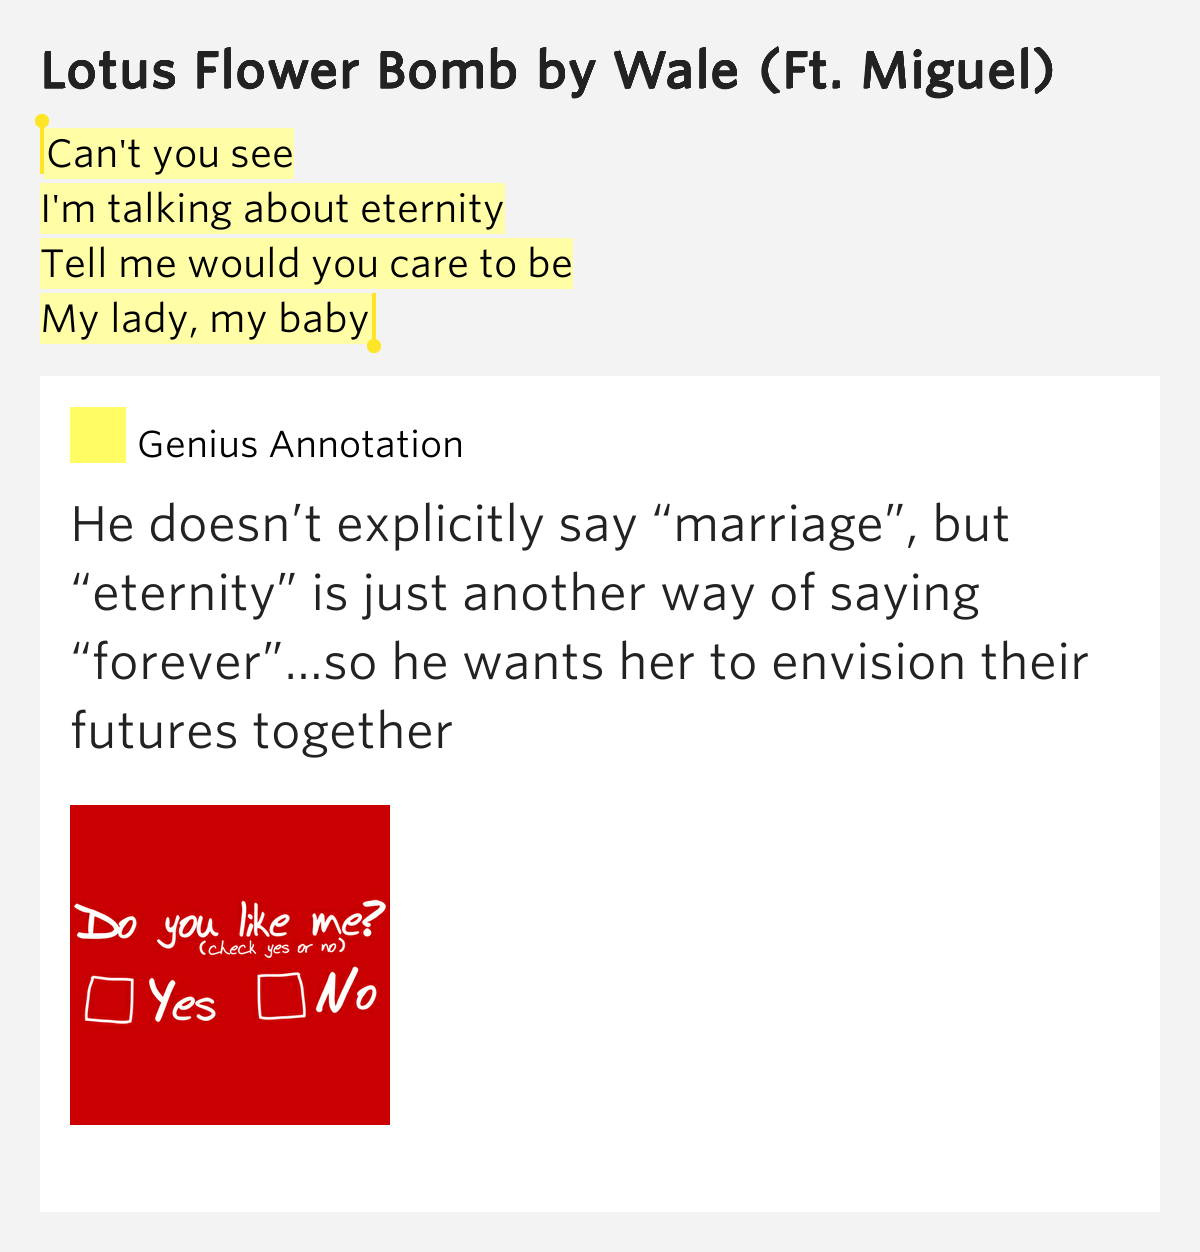 Wale Ft Miguel Lotus Flower Bomb Lyrics Gallery Flower Decoration